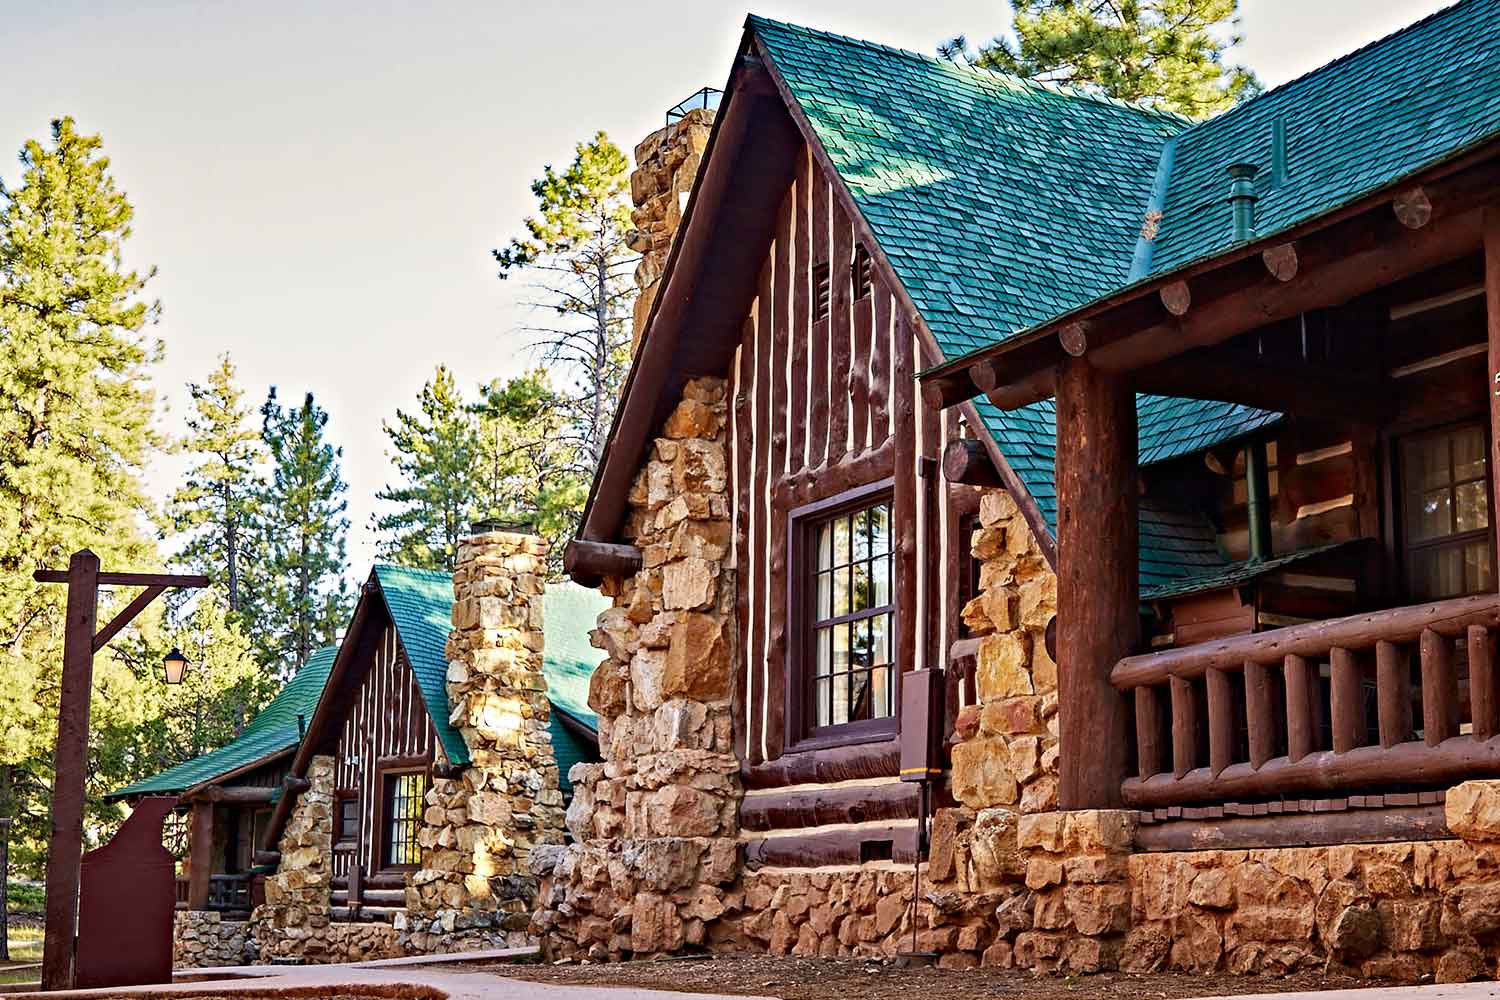 bryce_canyon_lodge.jpg